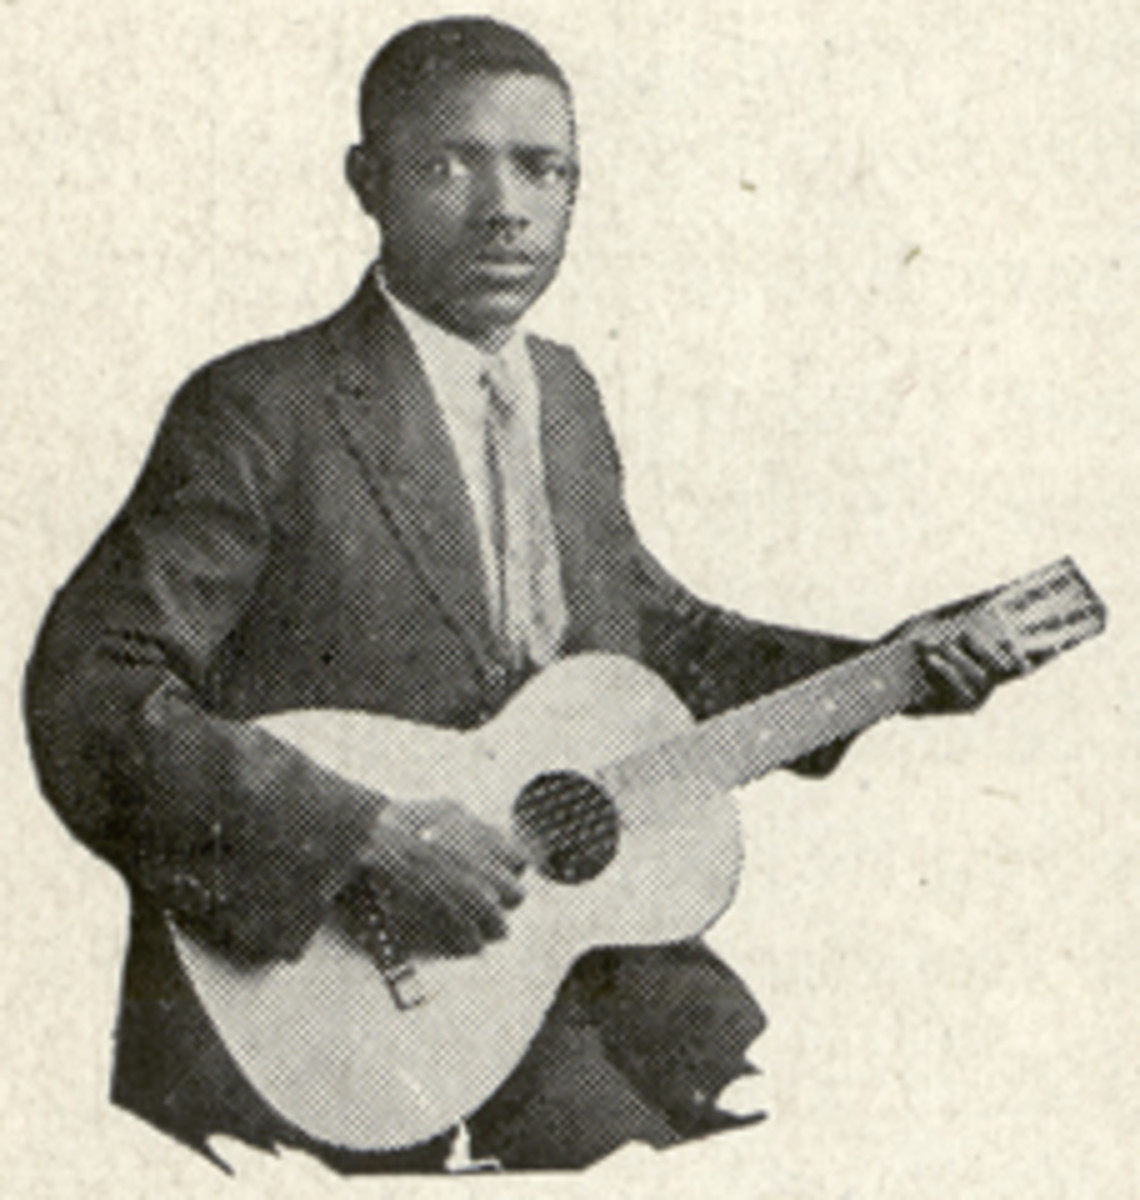 Furry Lewis. Image courtesy of Blues Images, a division of John Tefteller's World's Rarest Records